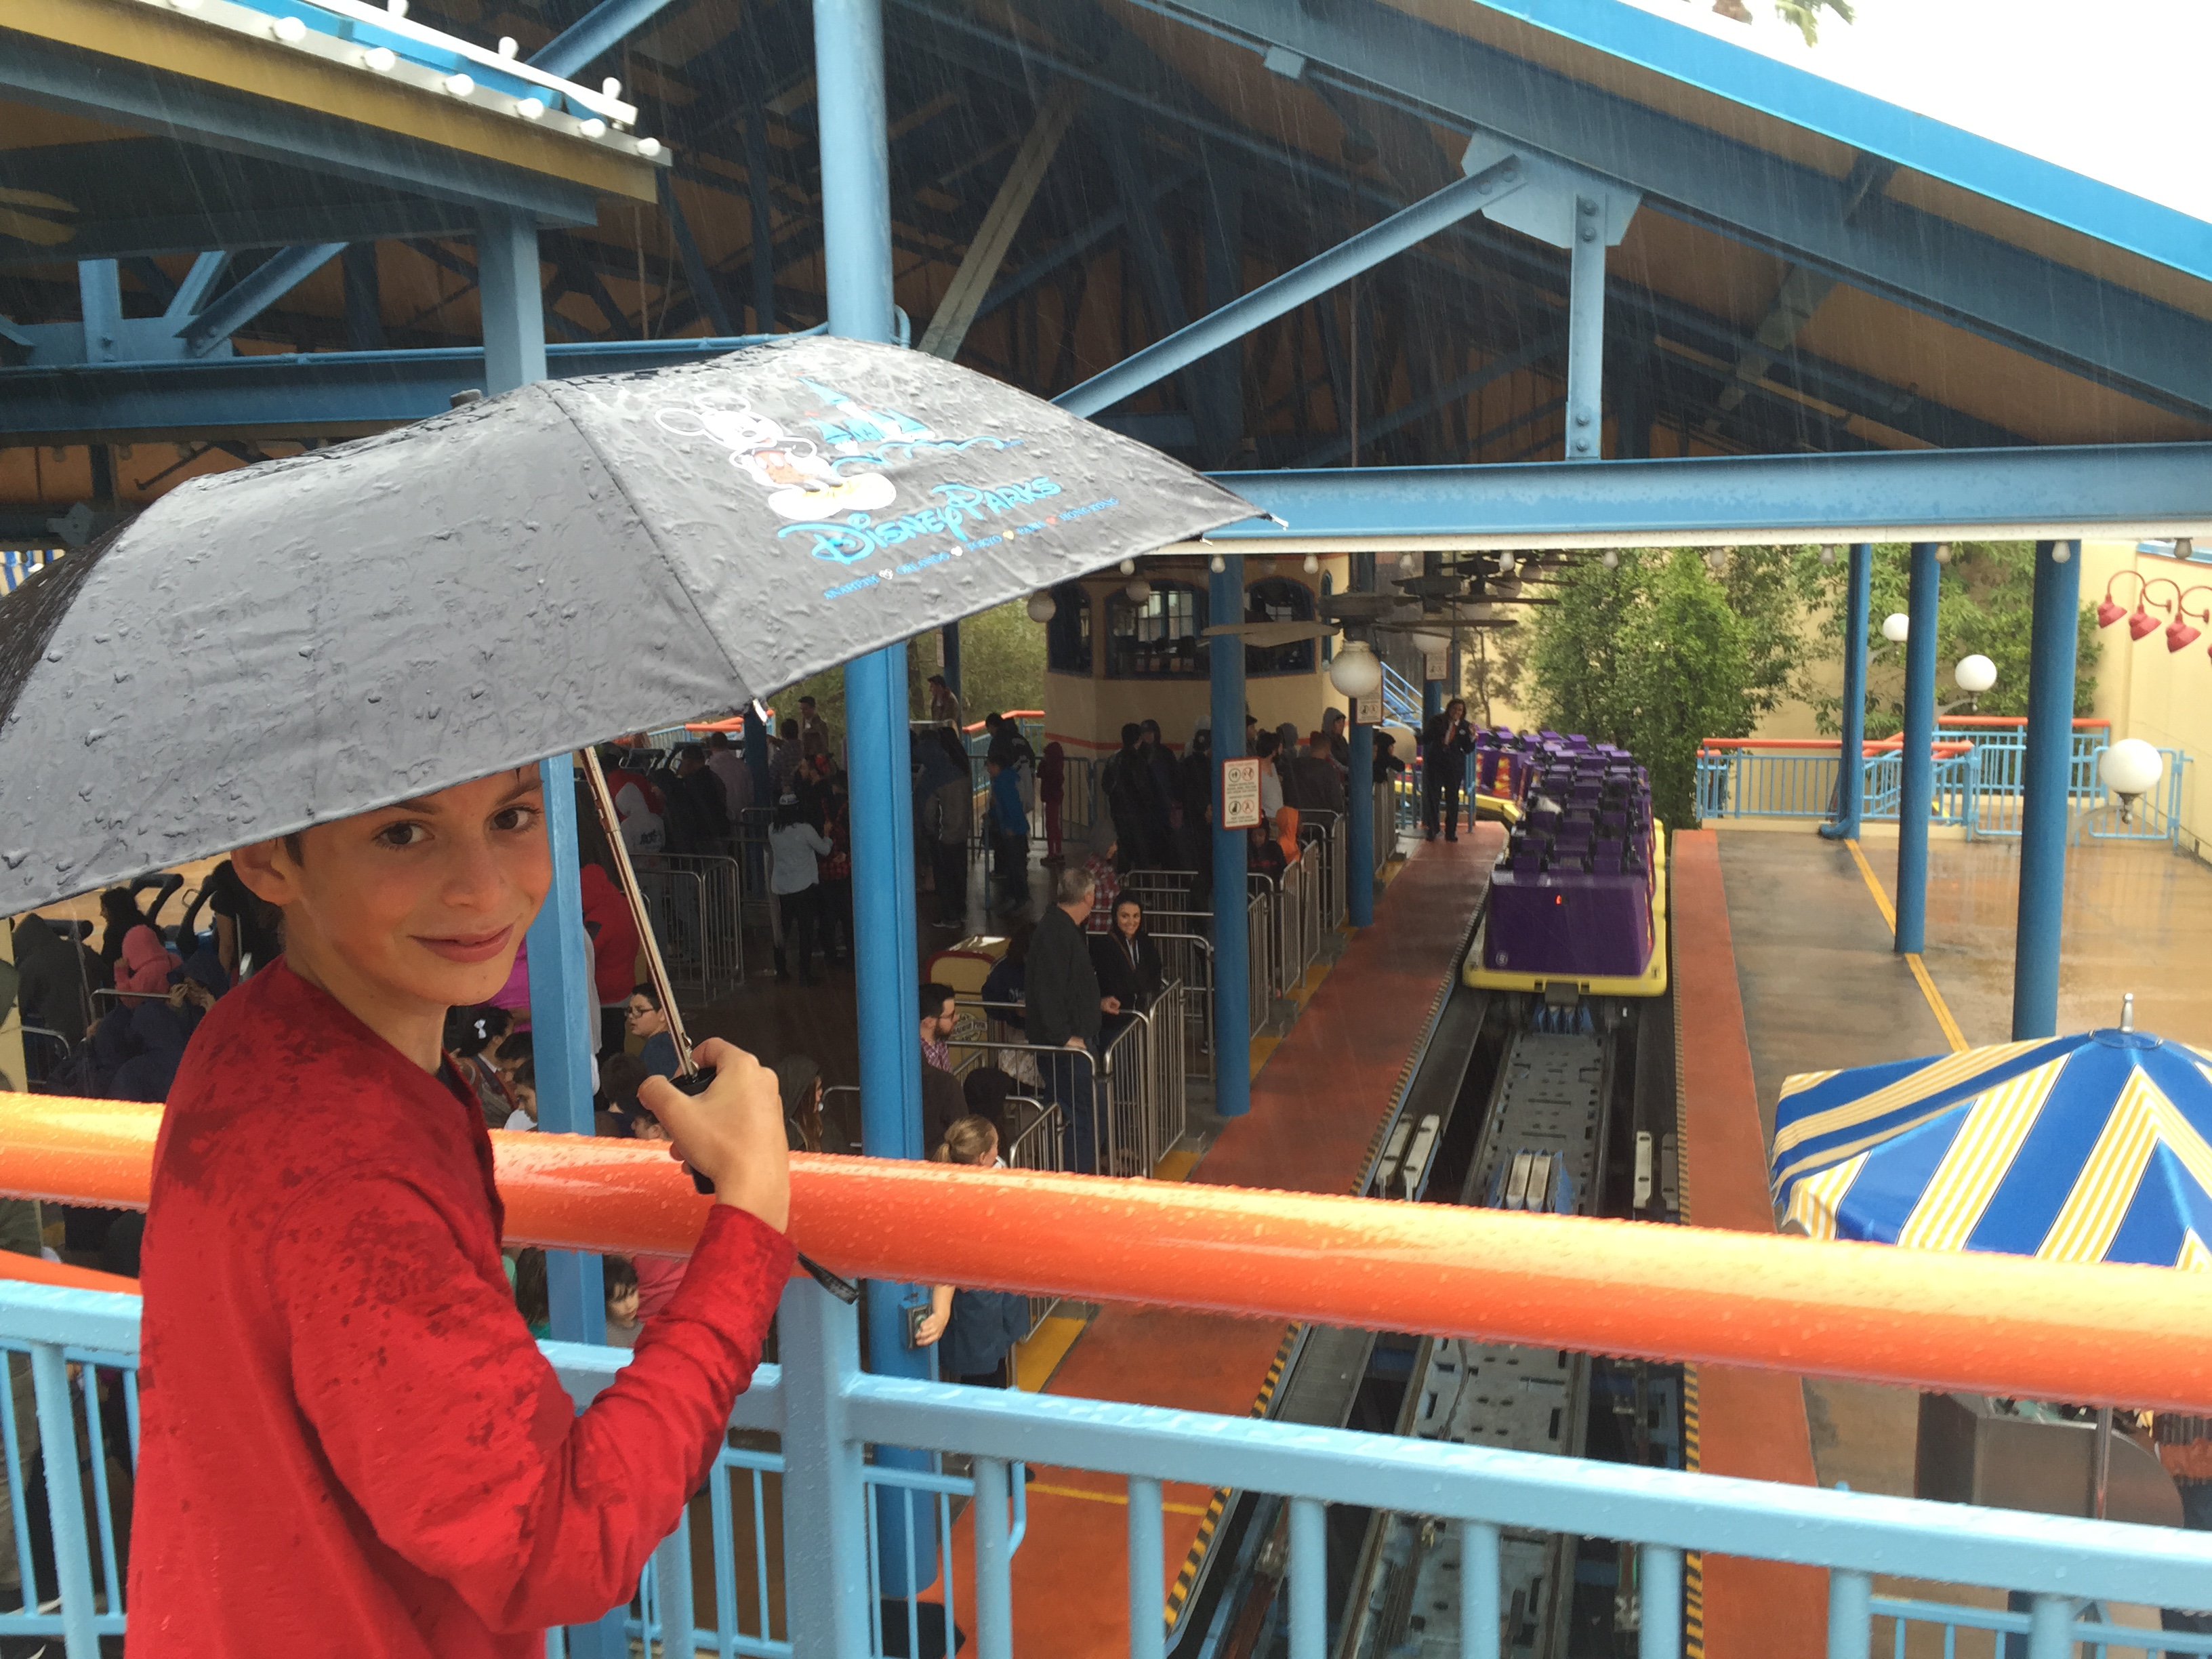 Bring it! Rainy Day fun at Disneyland. Tips to soak it all up.